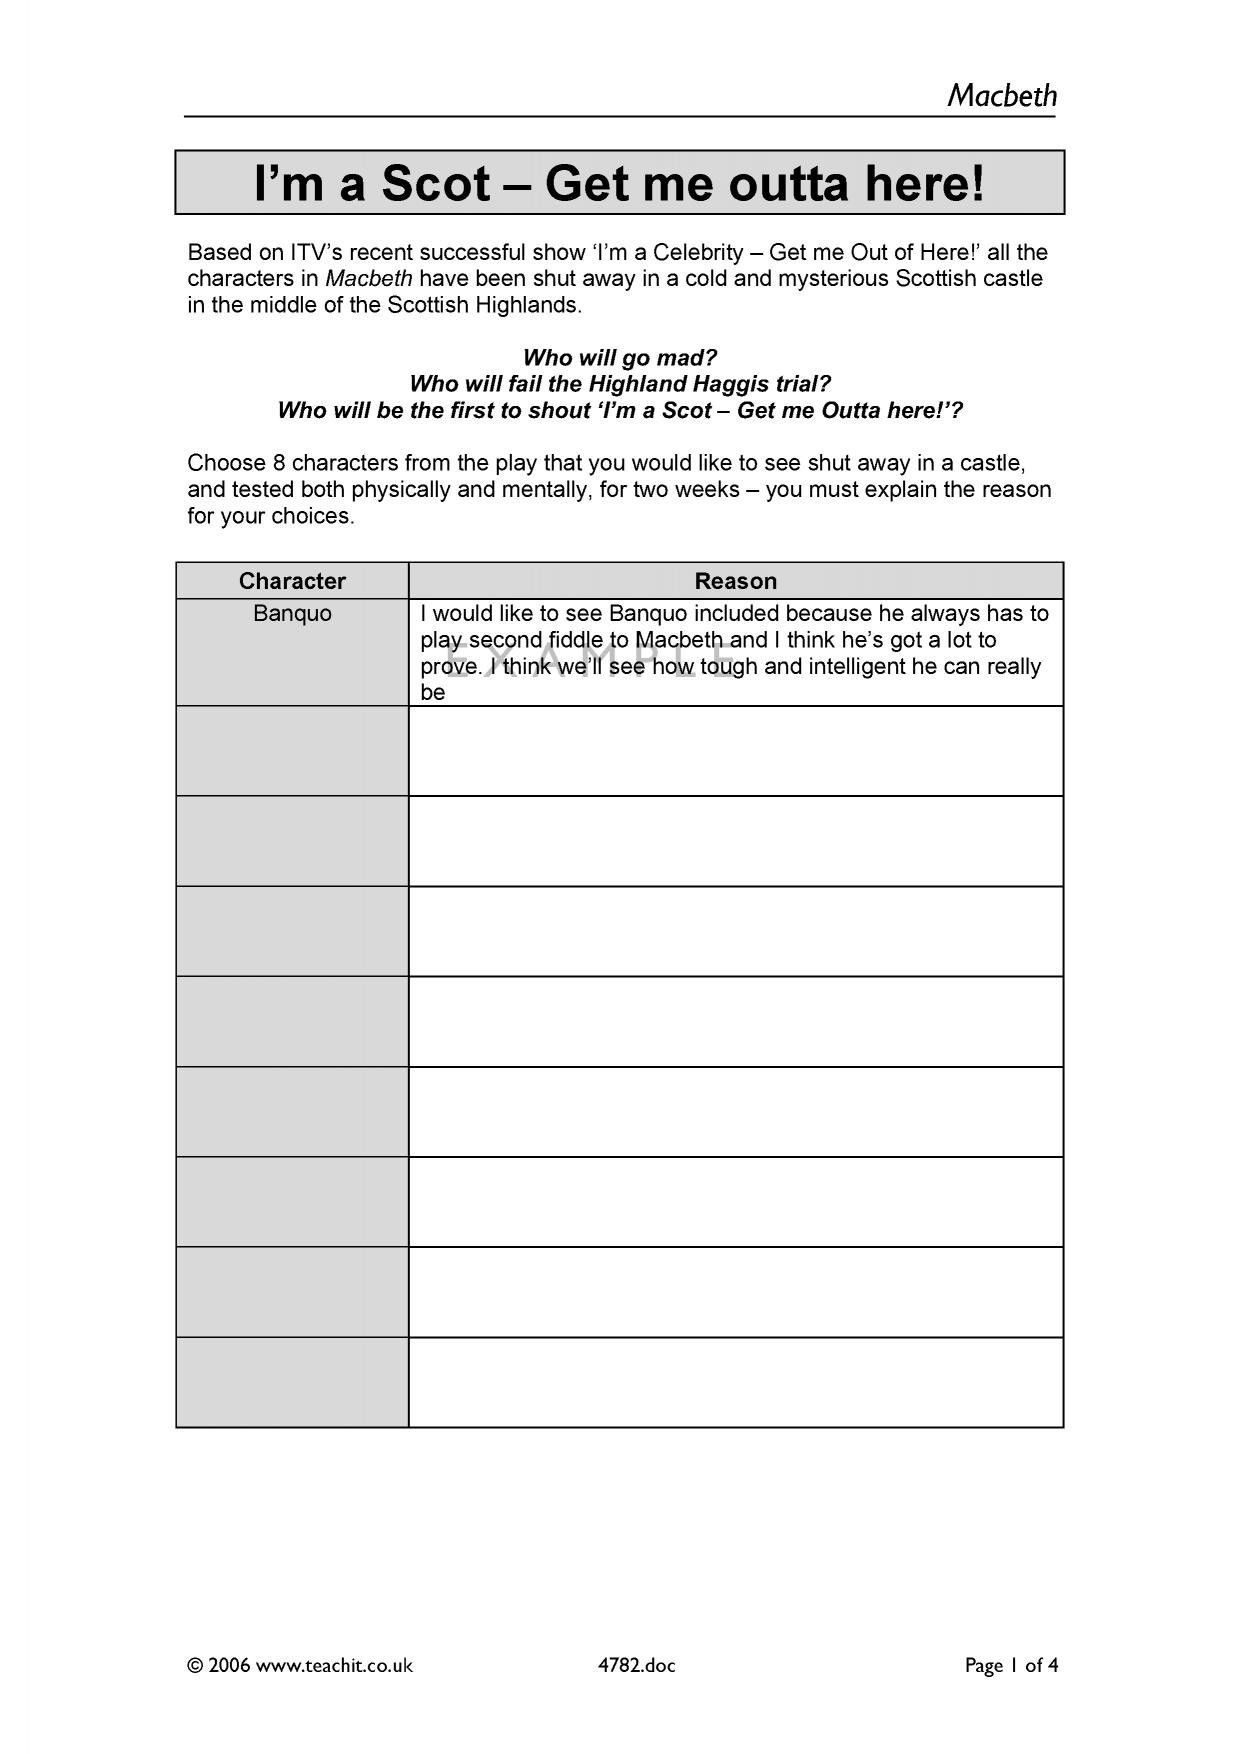 Analogy Worksheets for Middle School Arctic Free Printable Worksheet Middle School